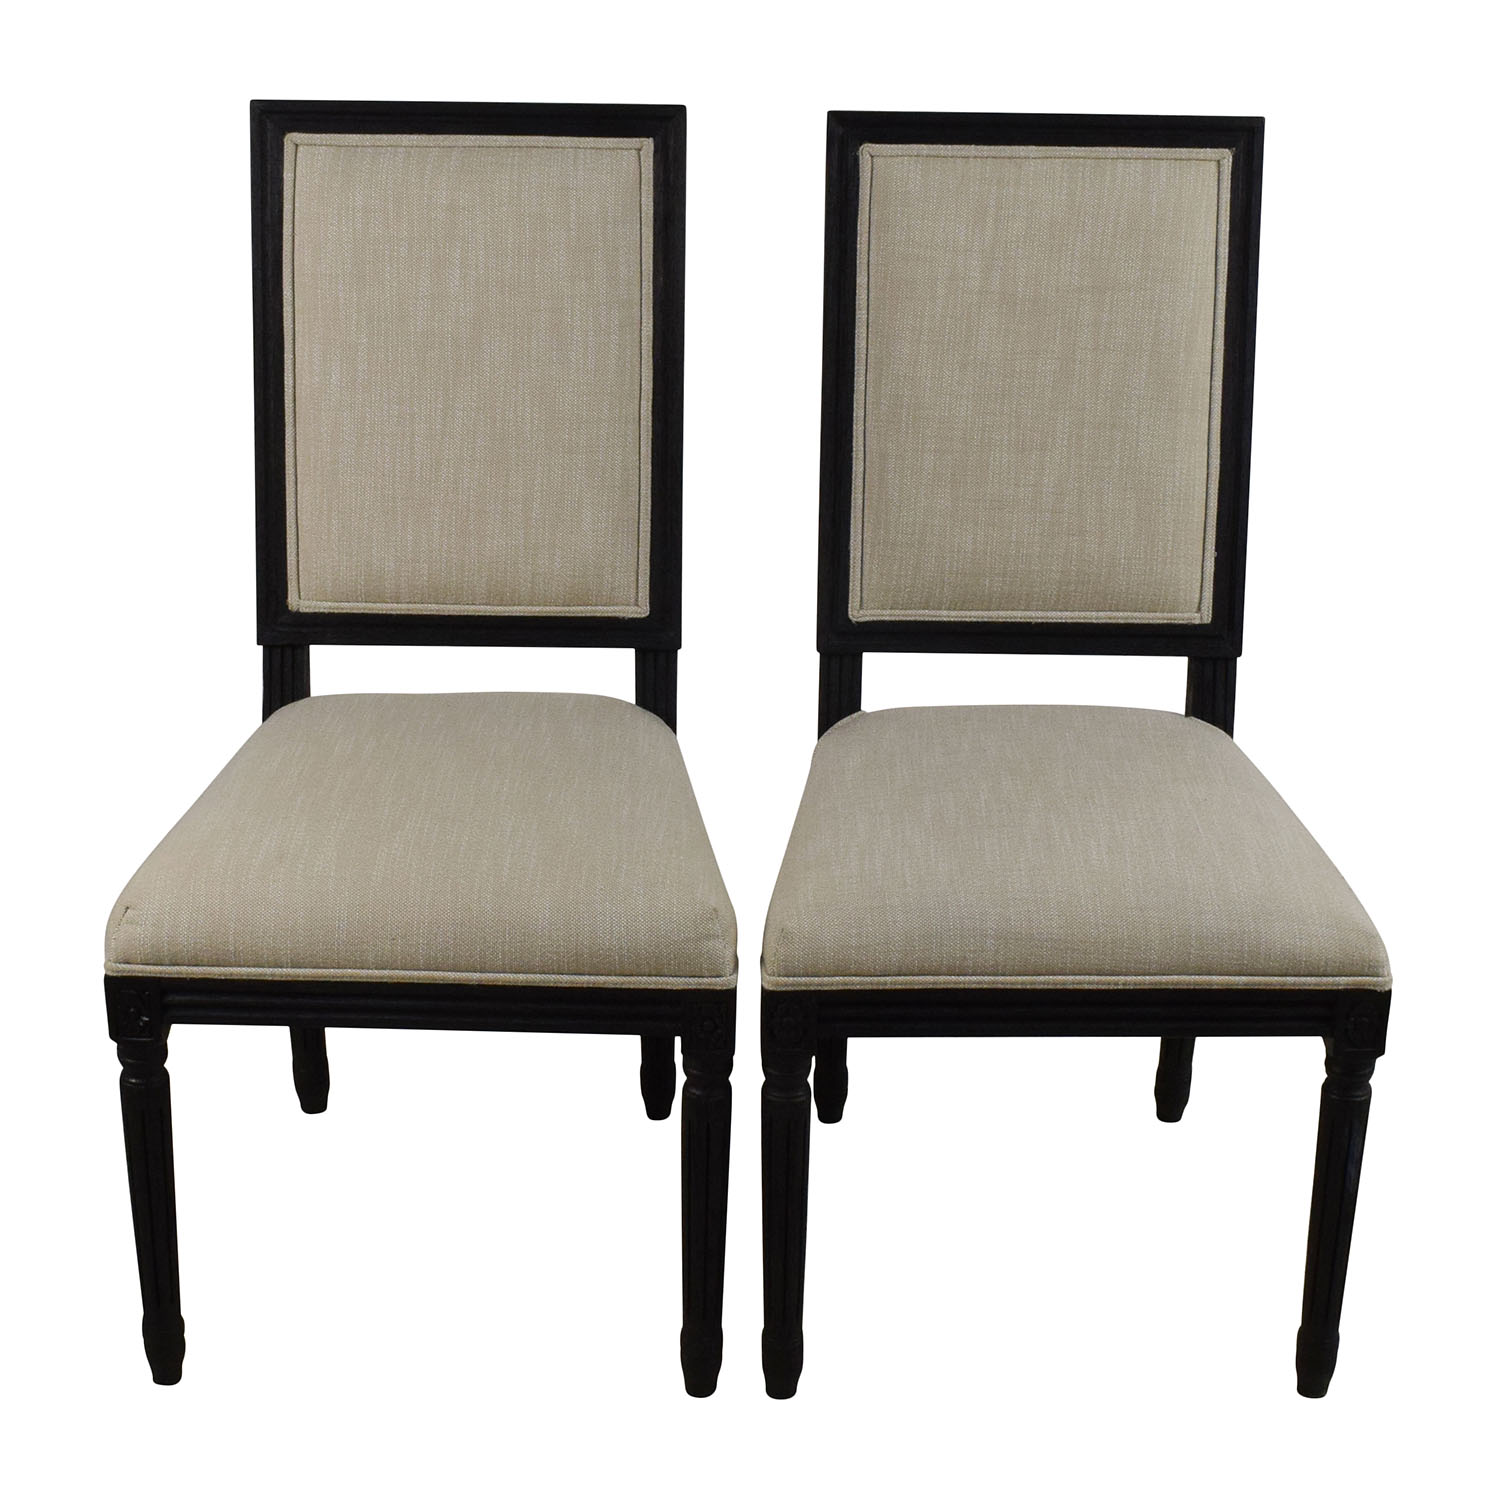 shop Restoration Hardware Restoration Hardware Pair of Vintage French Square Fabric Chairs online